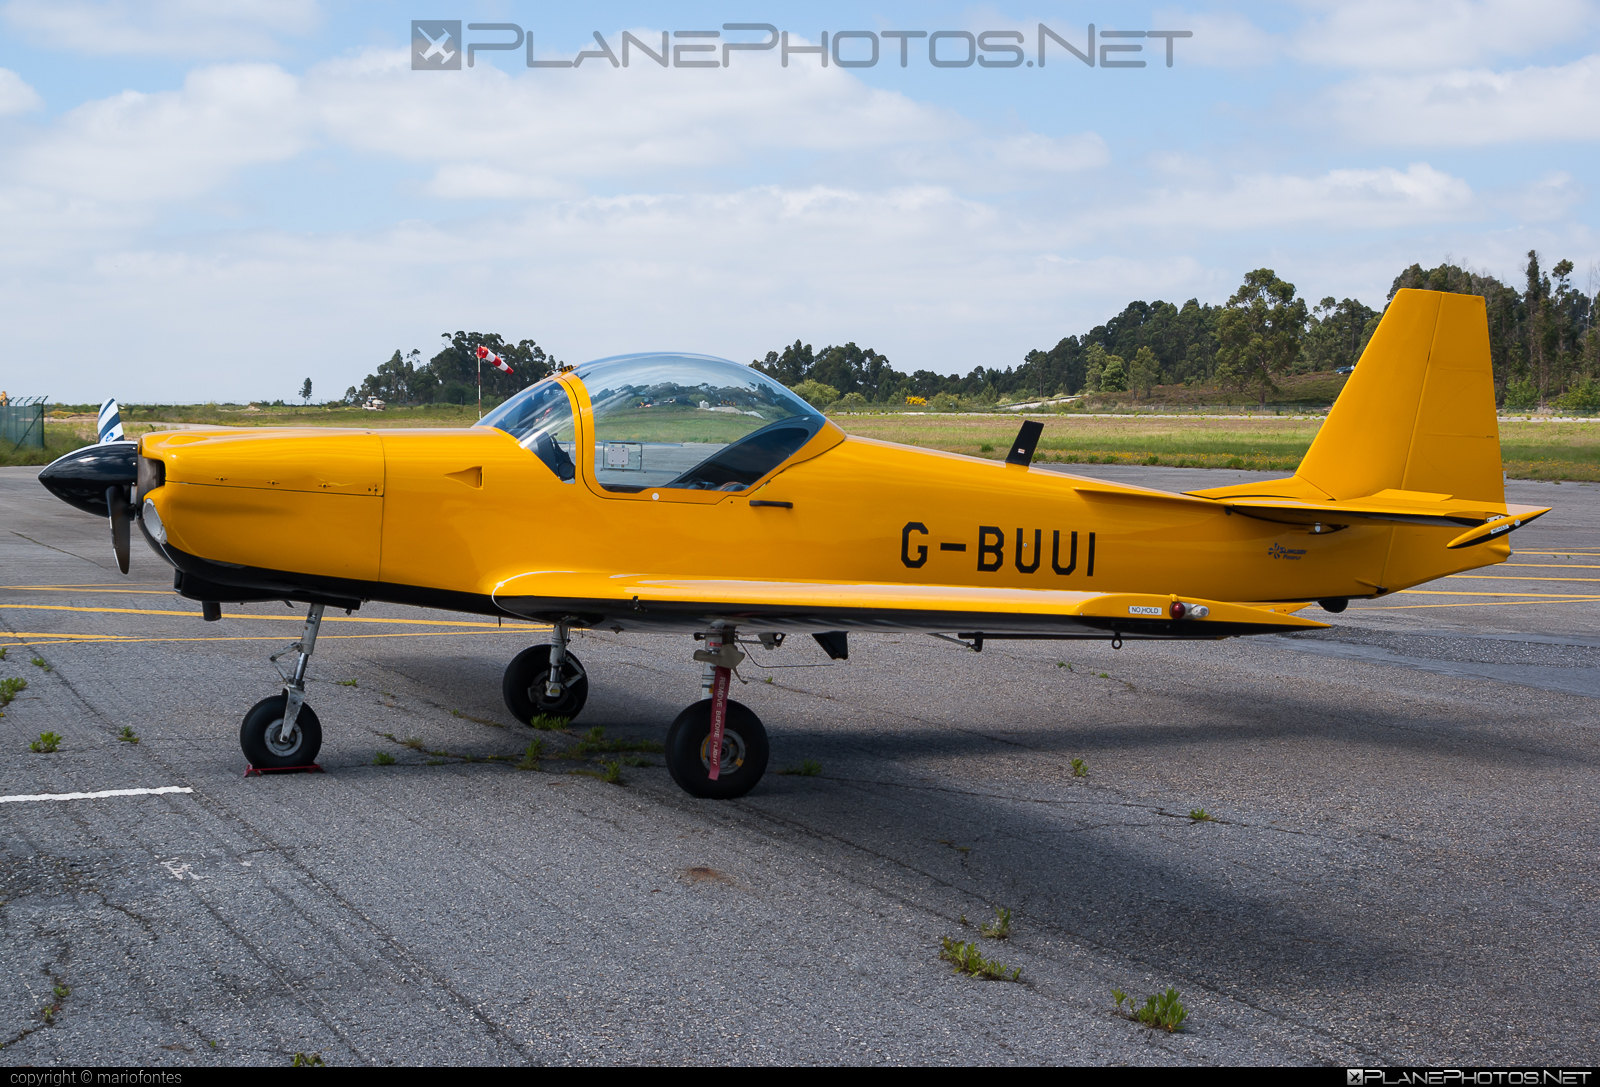 Slingsby T67M Mk.II Firefly - G-BUUI operated by Private operator